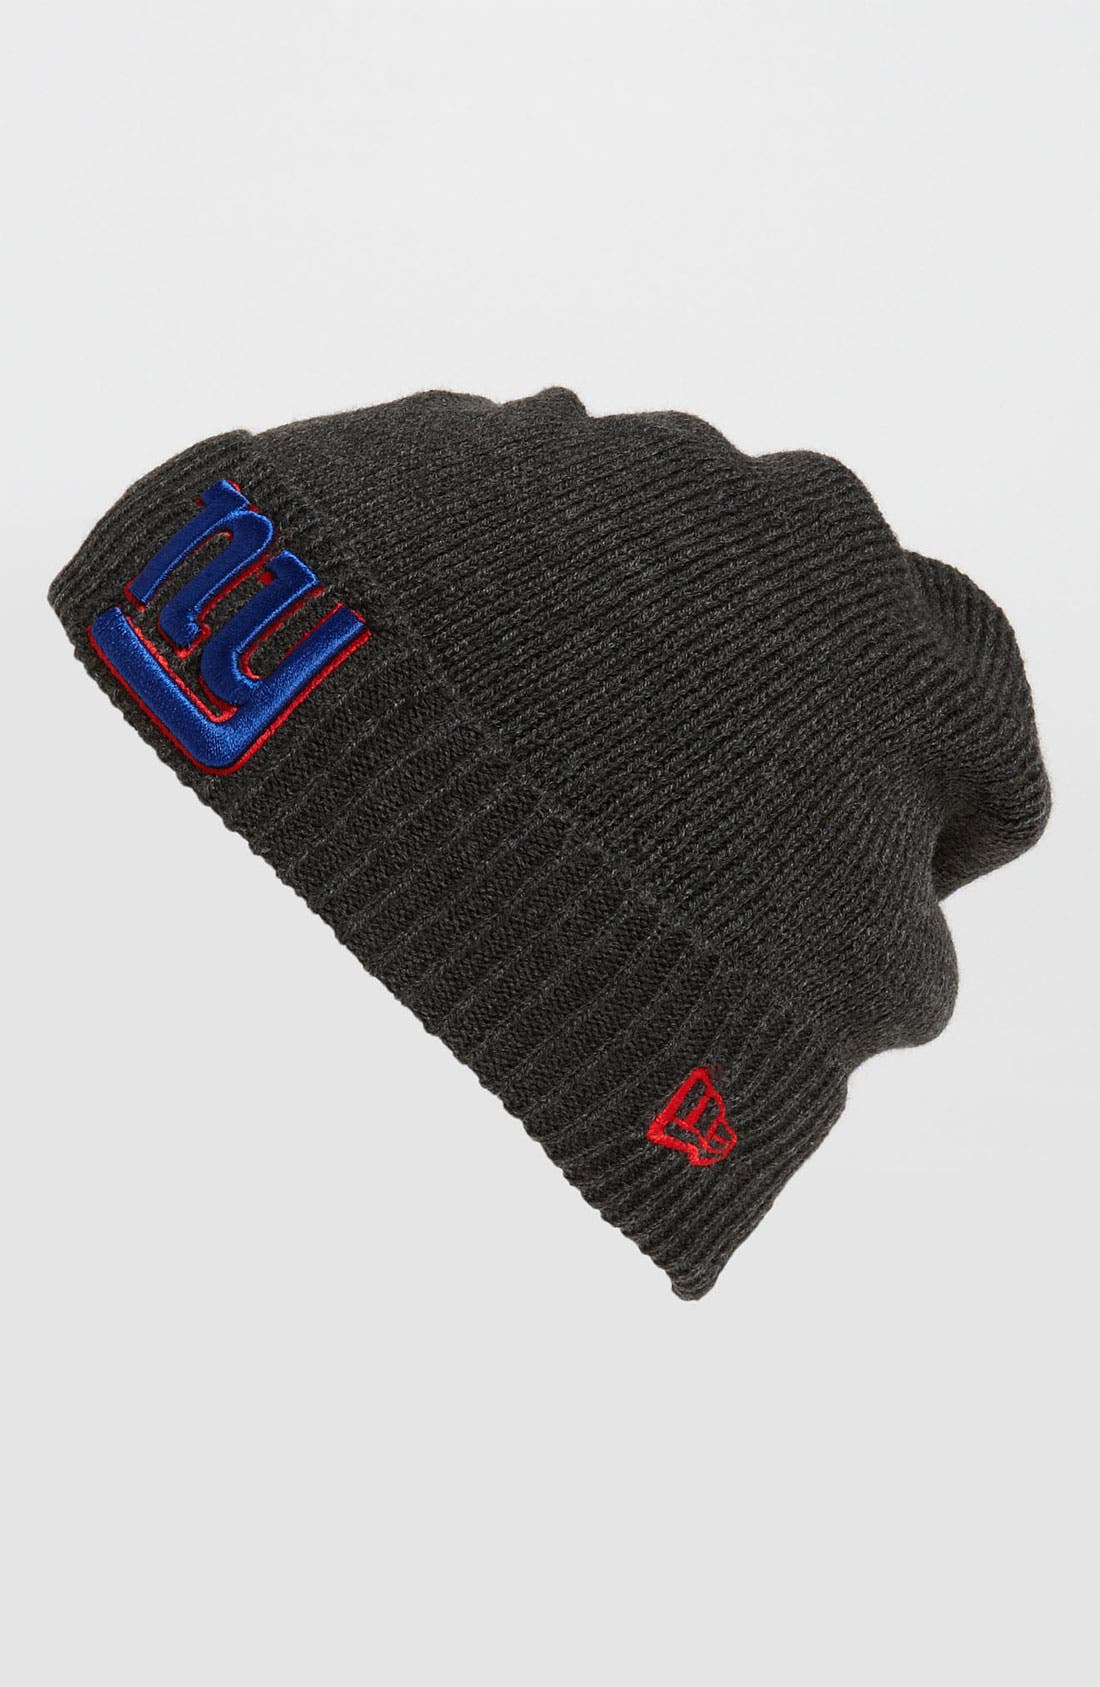 Alternate Image 1 Selected - New Era Cap 'New York Giants' Thermal Beanie